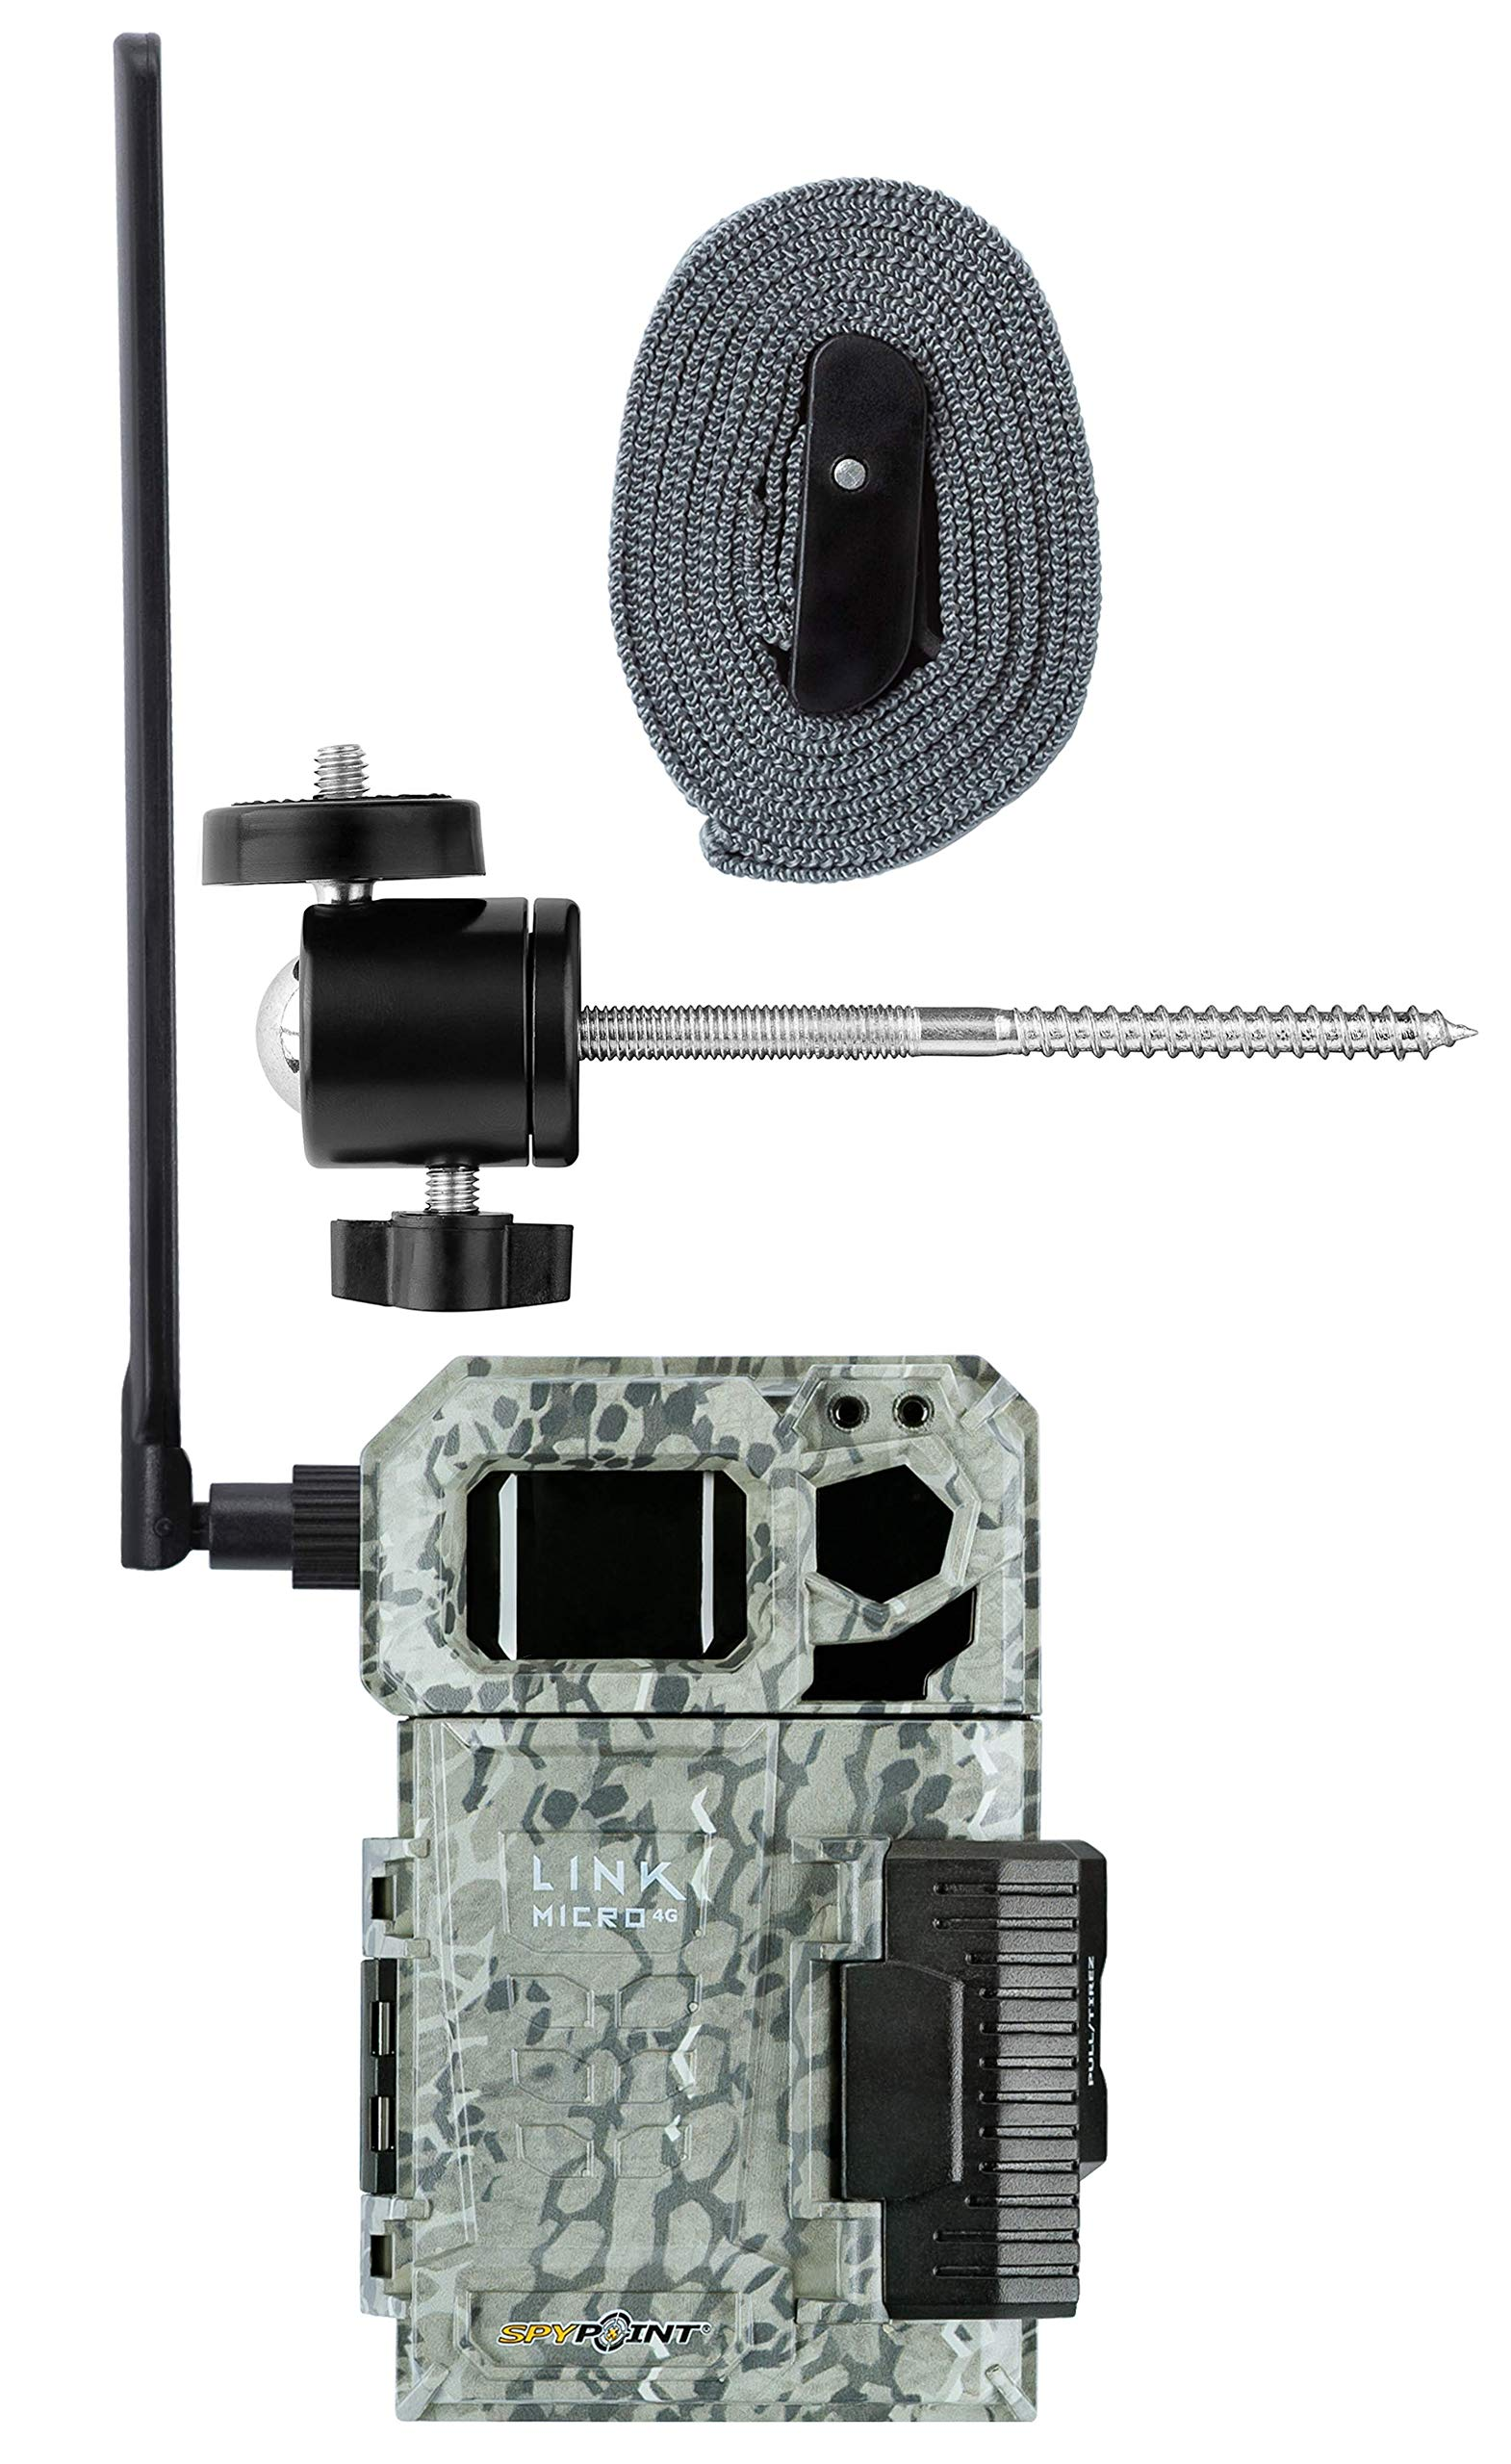 Spypoint Link Micro 4G Cellular Trail Camera with Mount (AT&T (USA)) by SPYPOINT